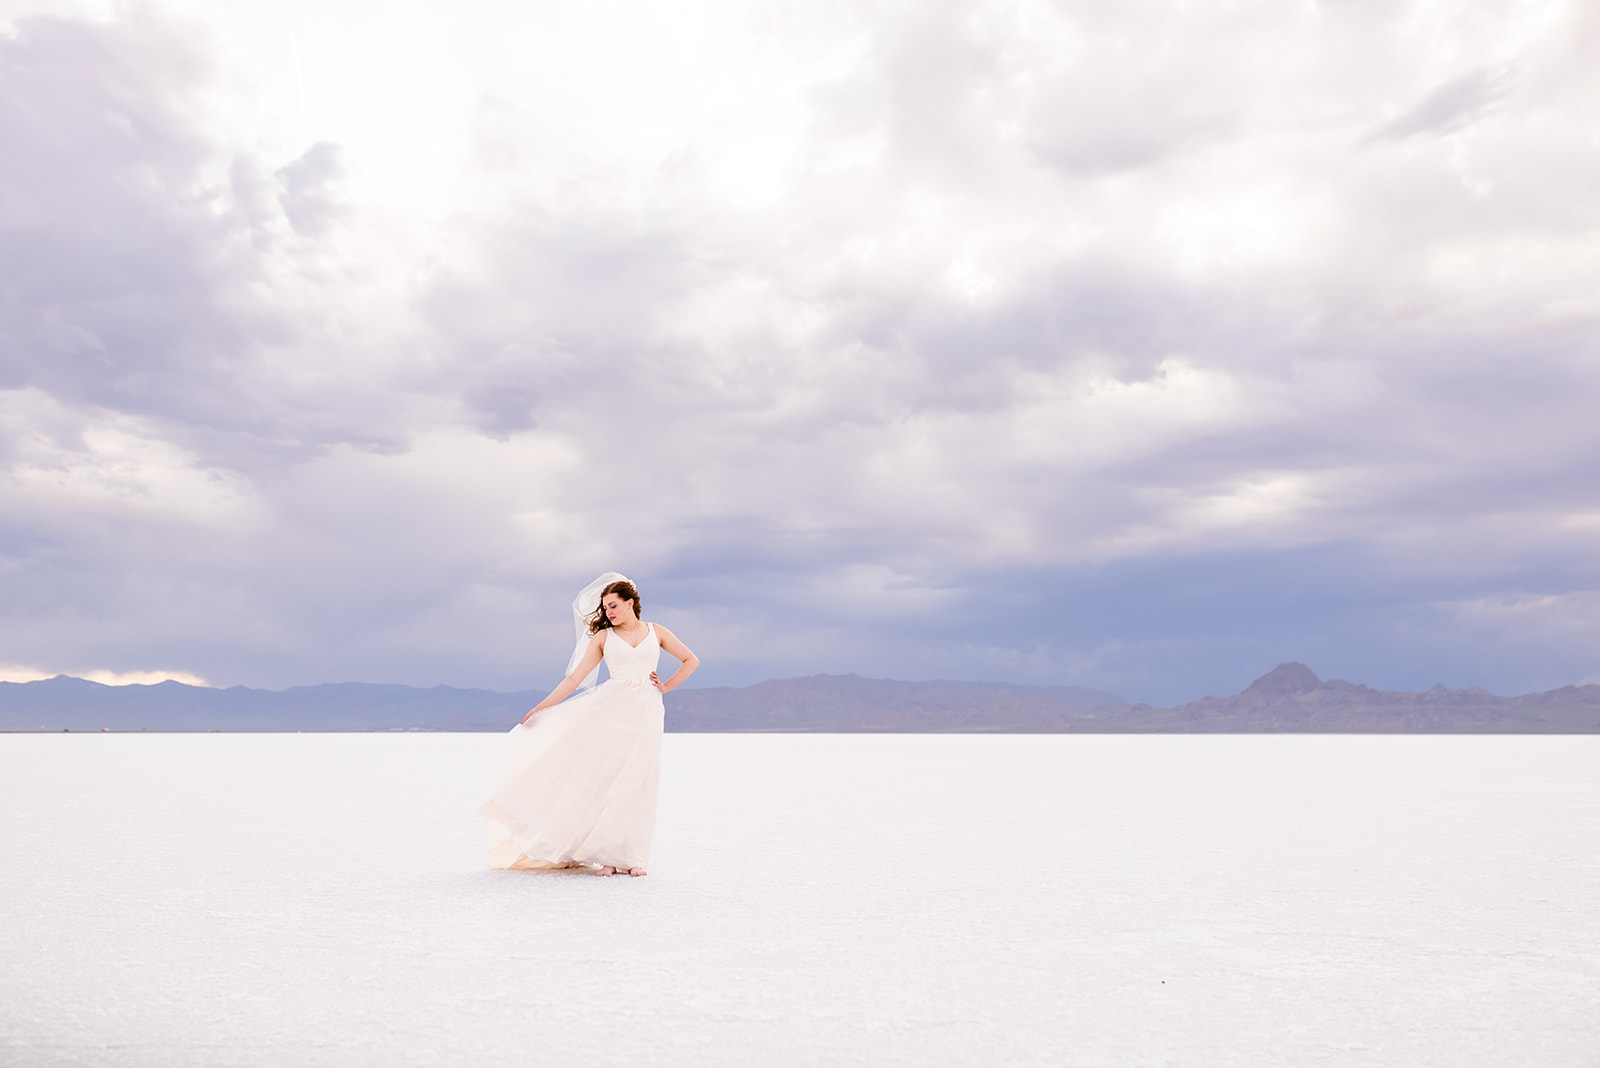 Romantic bridal portrait of Adri at the Bonneville Salt Falts in Utah. Embrace the wind! Taken by Coley Cook Photography.